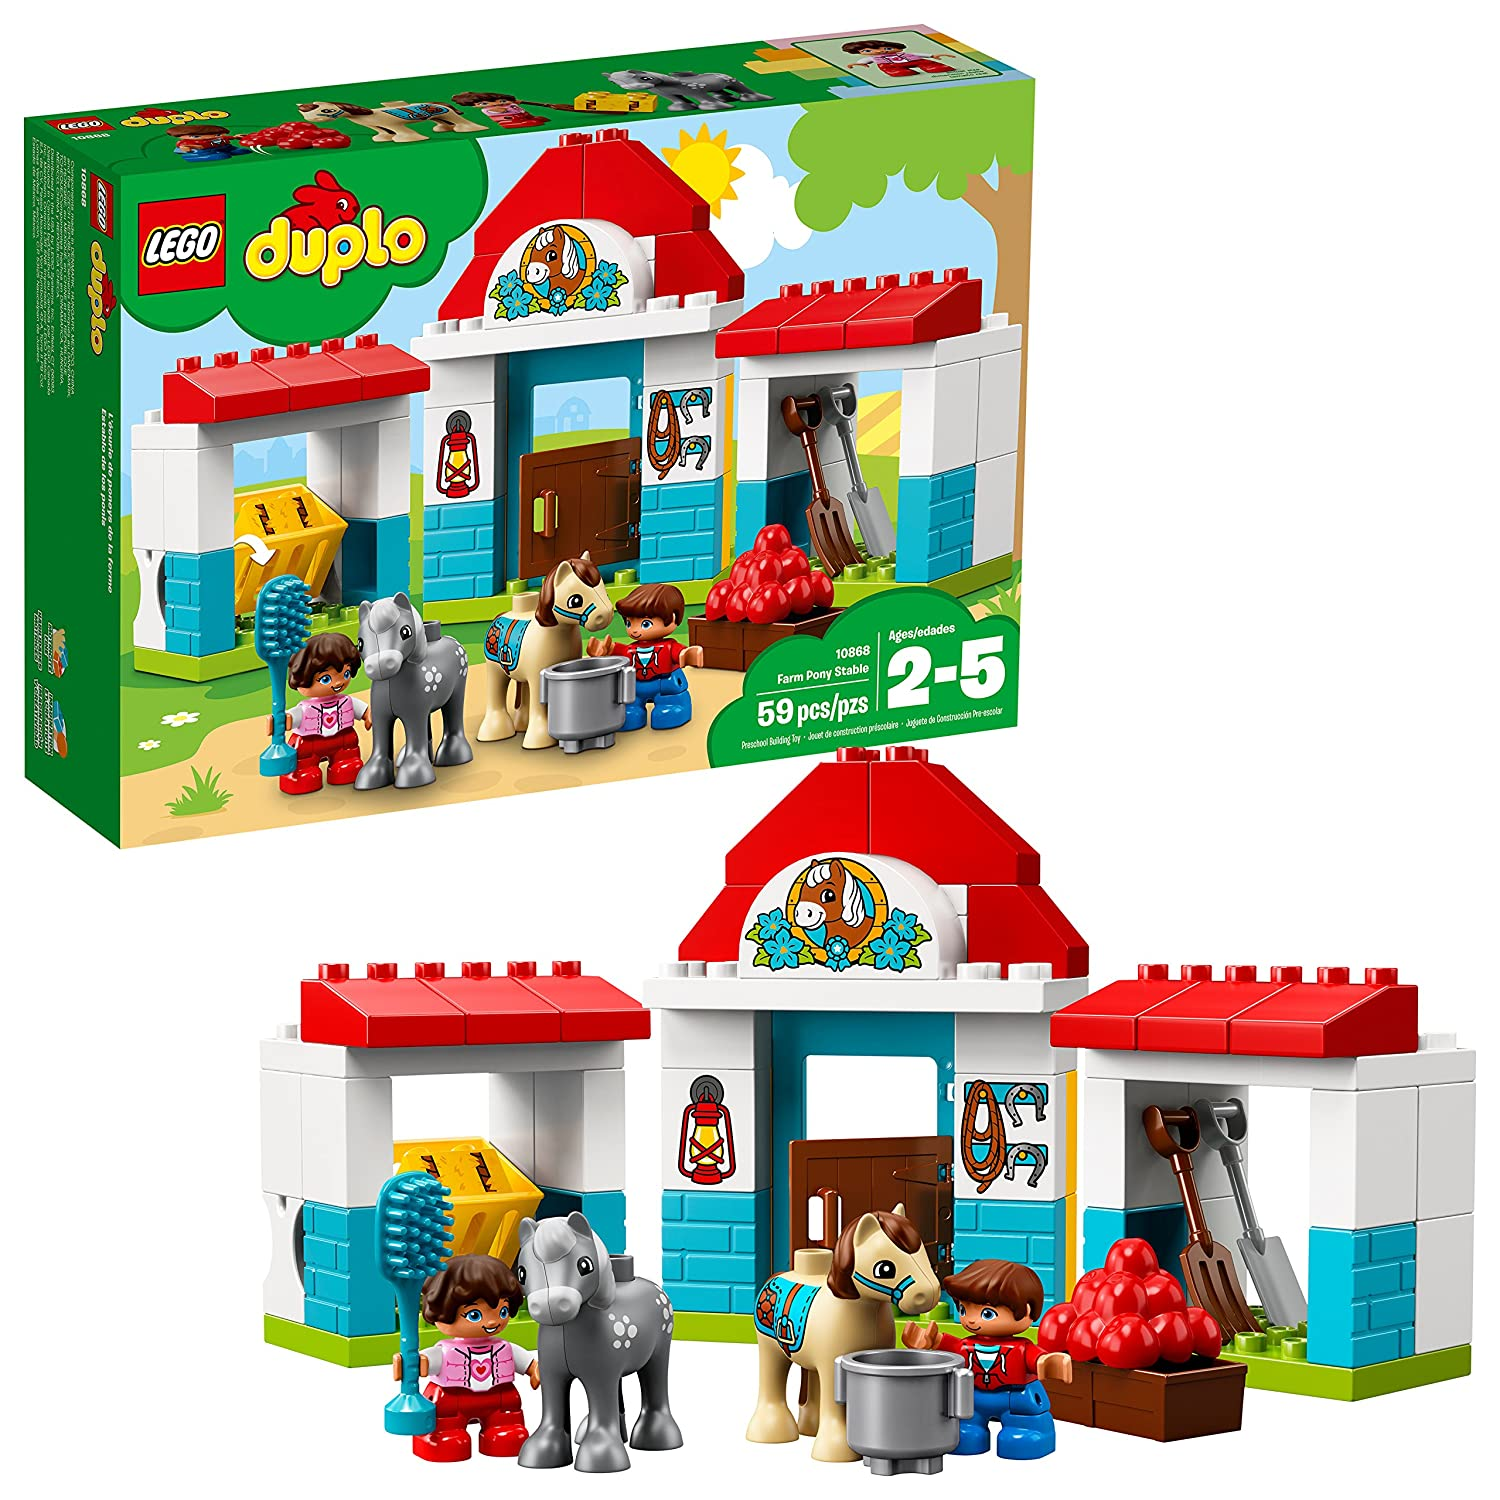 LEGO Duplo Town 6213739 Farm Pony Stable 10868 Building Kit (59 Piece)